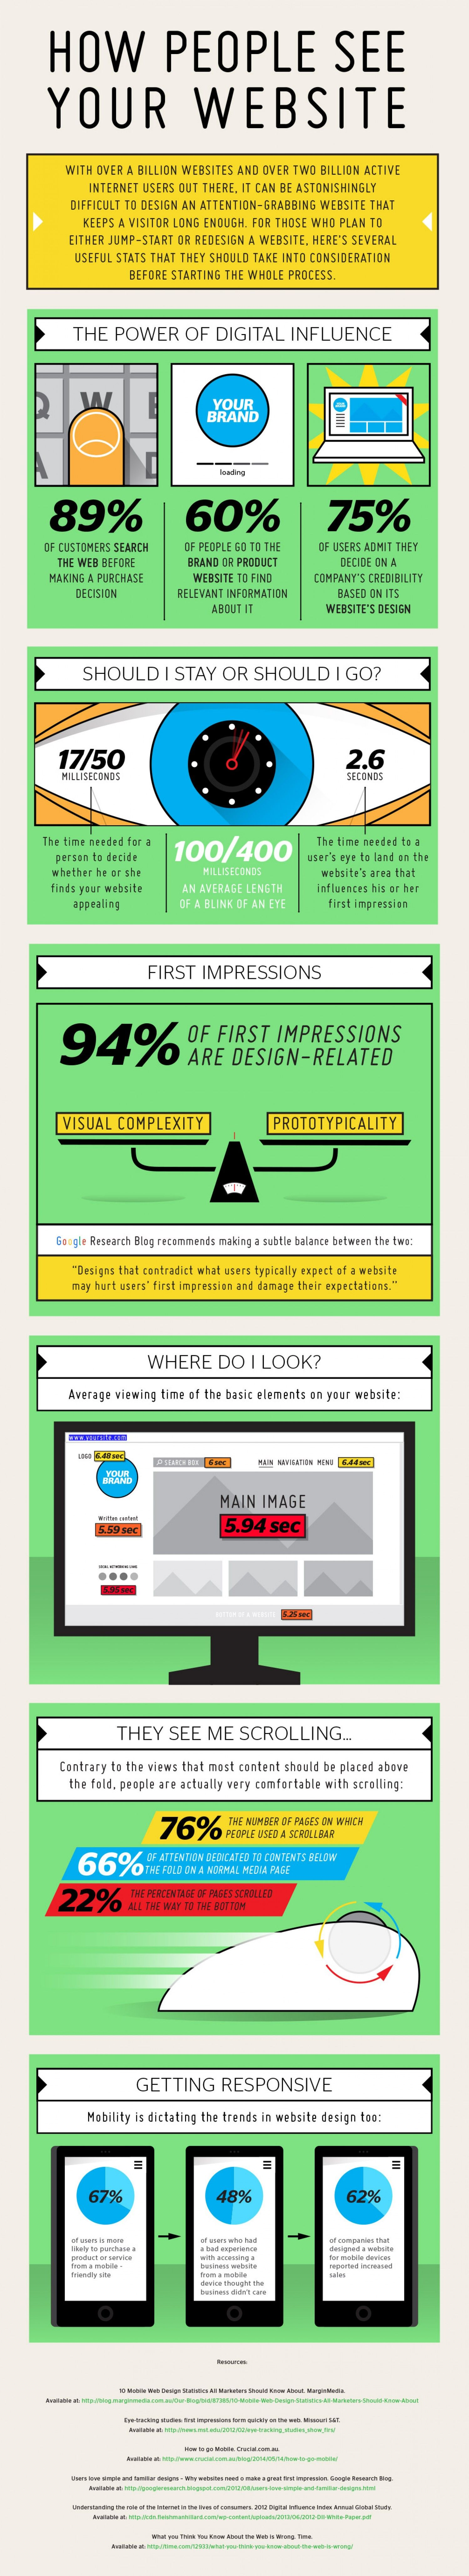 716365ce396 How People See Your Website Infographic